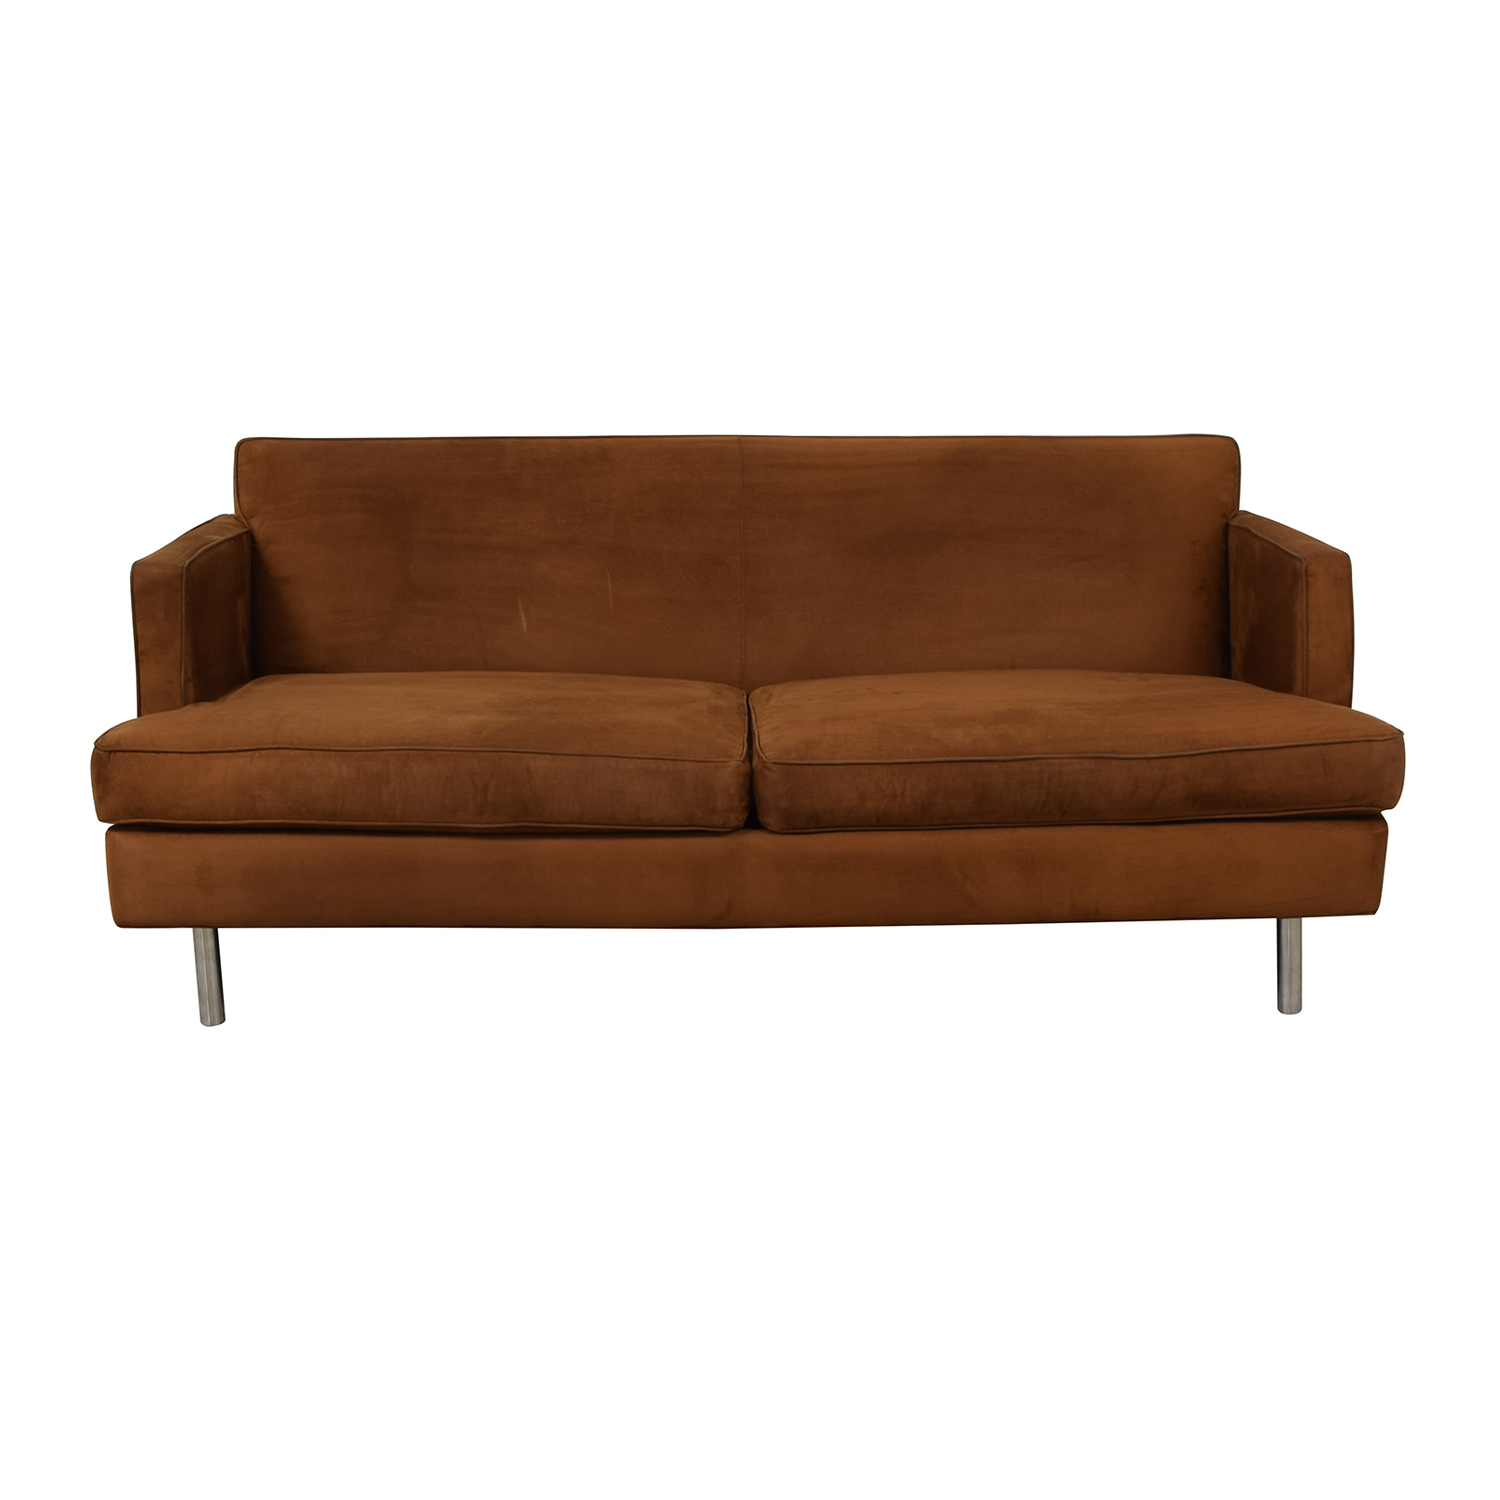 Rowe Furniture Two-Cushion Sofa sale